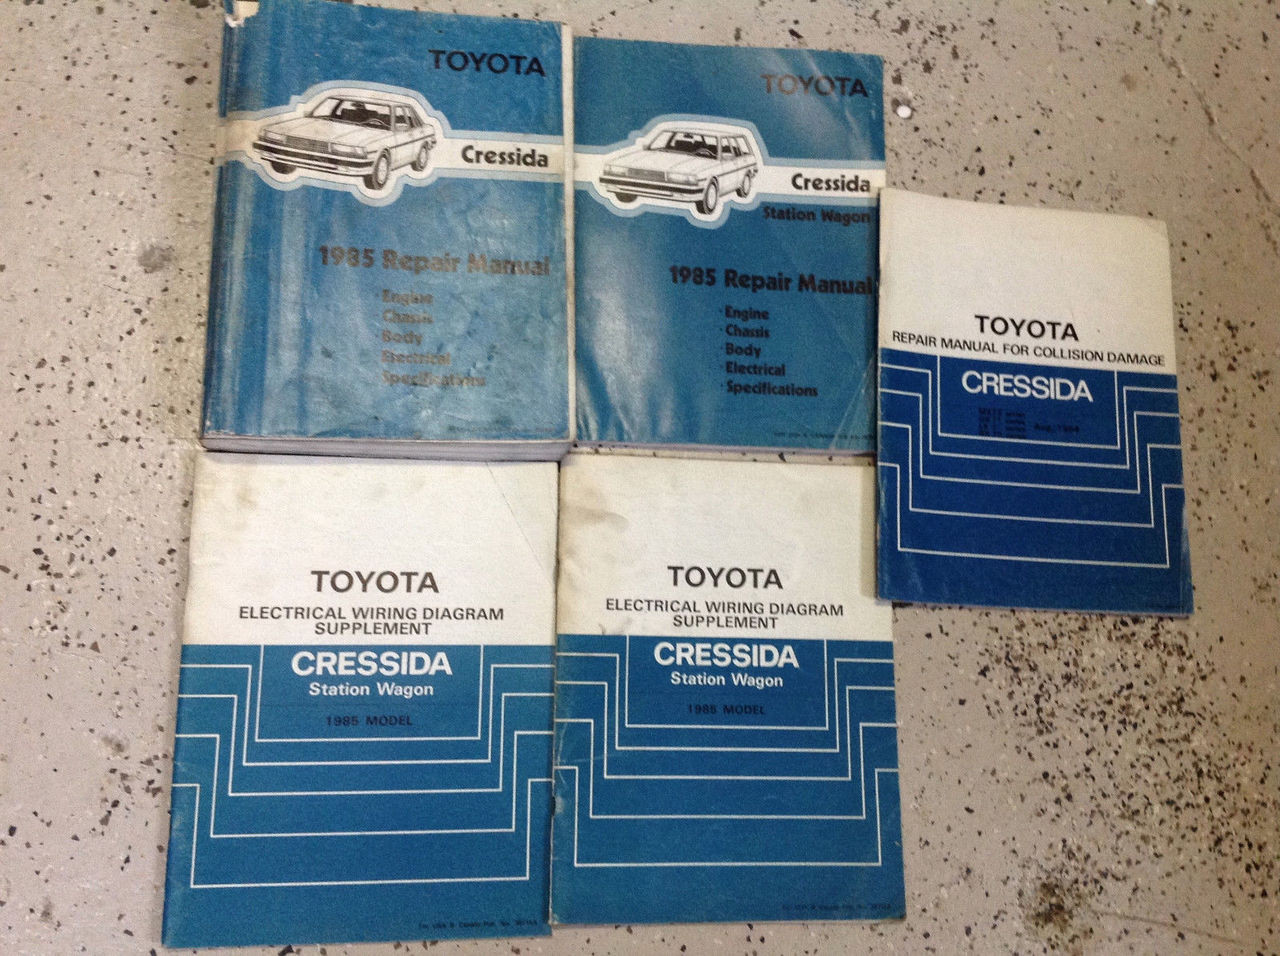 Diagram 1987 Mazda 323 Station Wagon Service Manual Set Oem Service Manual And The Electrical Wiring Diagrams Manual Full Version Hd Quality Diagrams Manual Diagramcadem Natalenellacittadellegrotte It